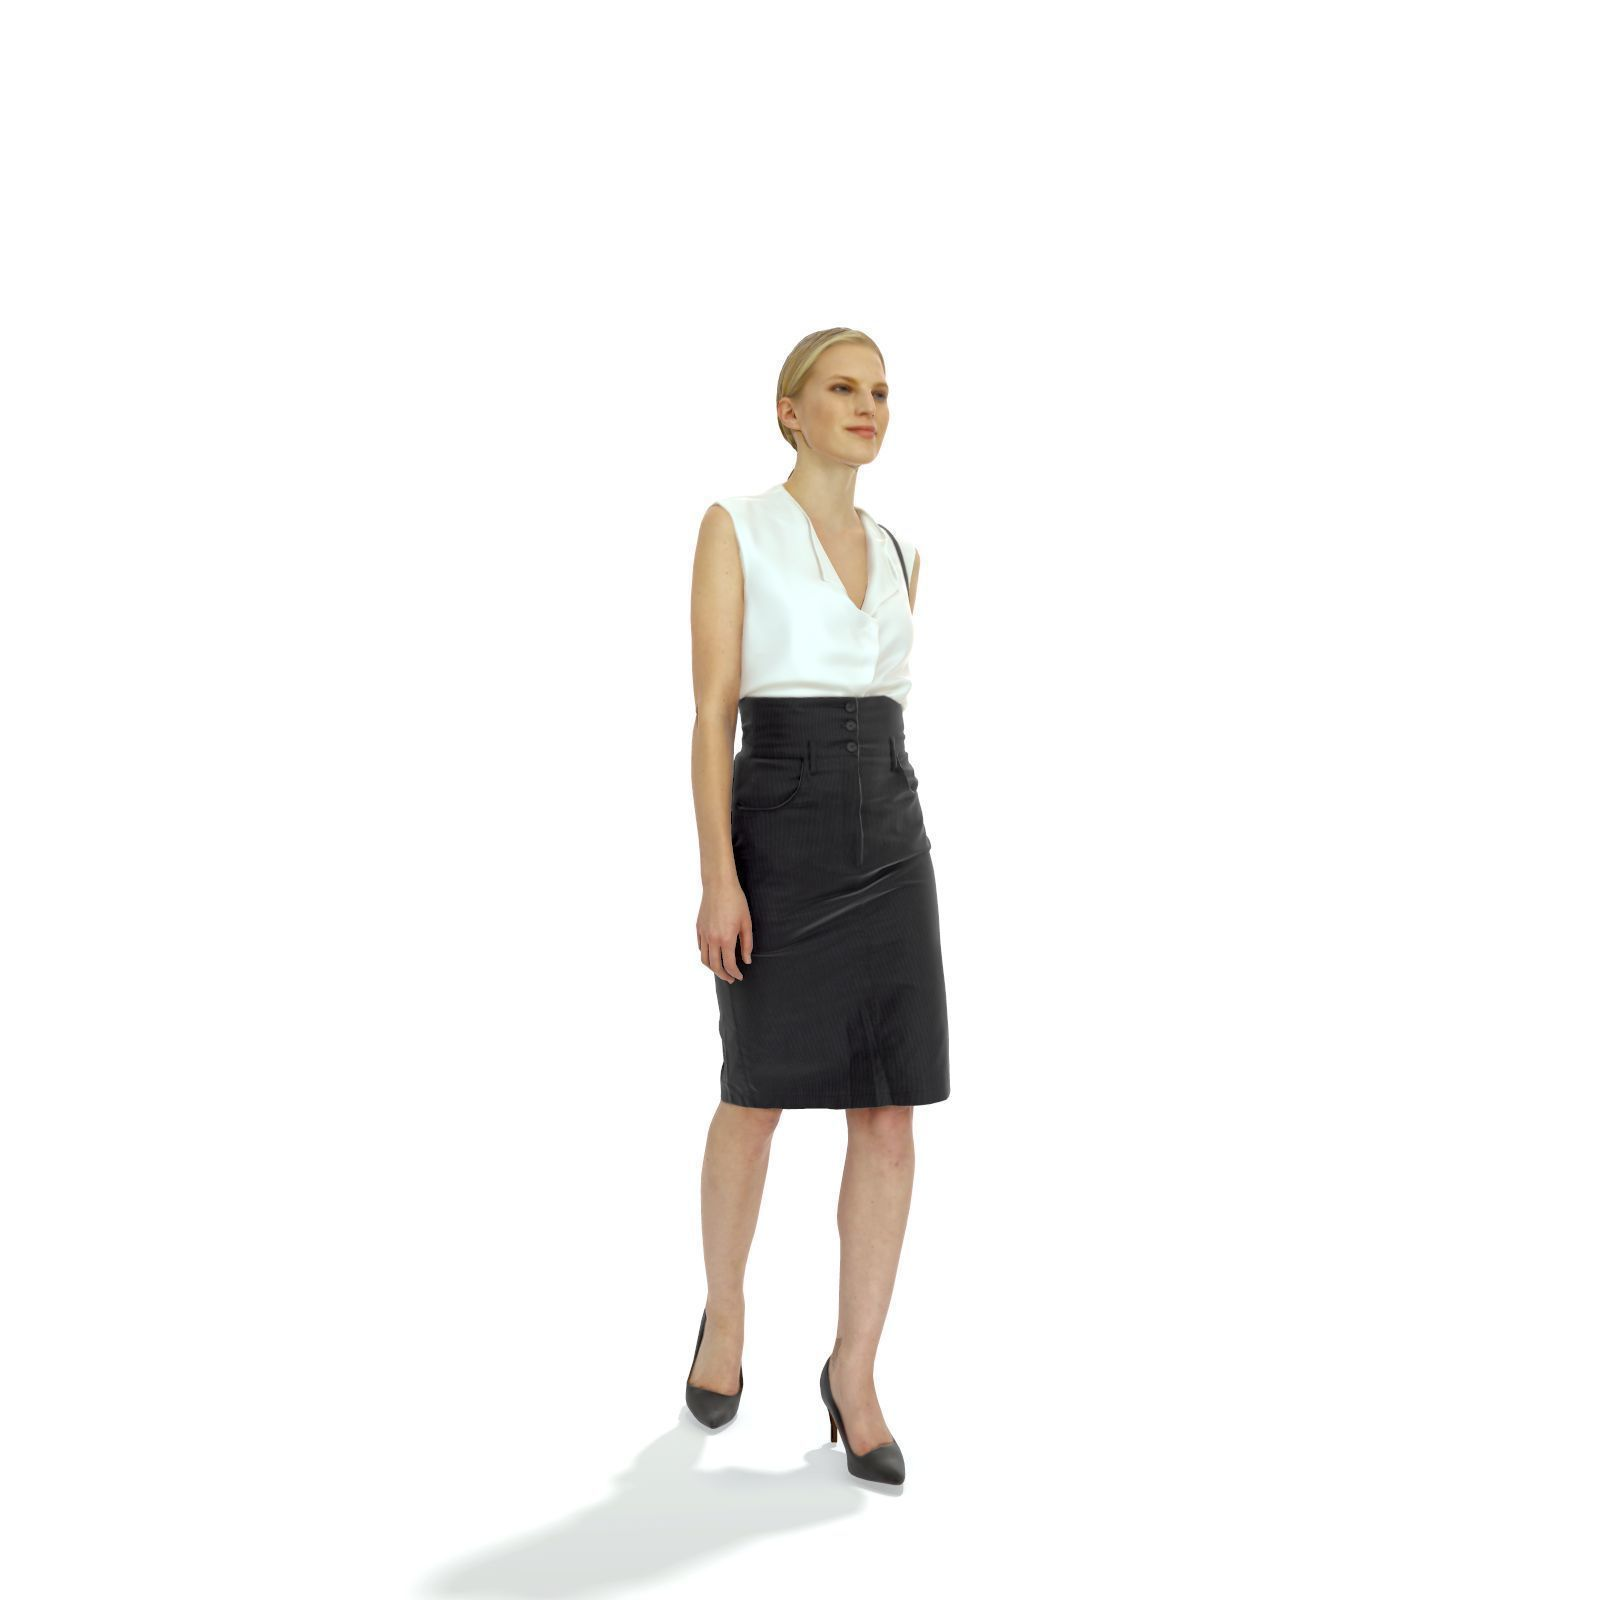 Blonde Business Woman with Long Skirt BWom0314-HD2-O06P01-S